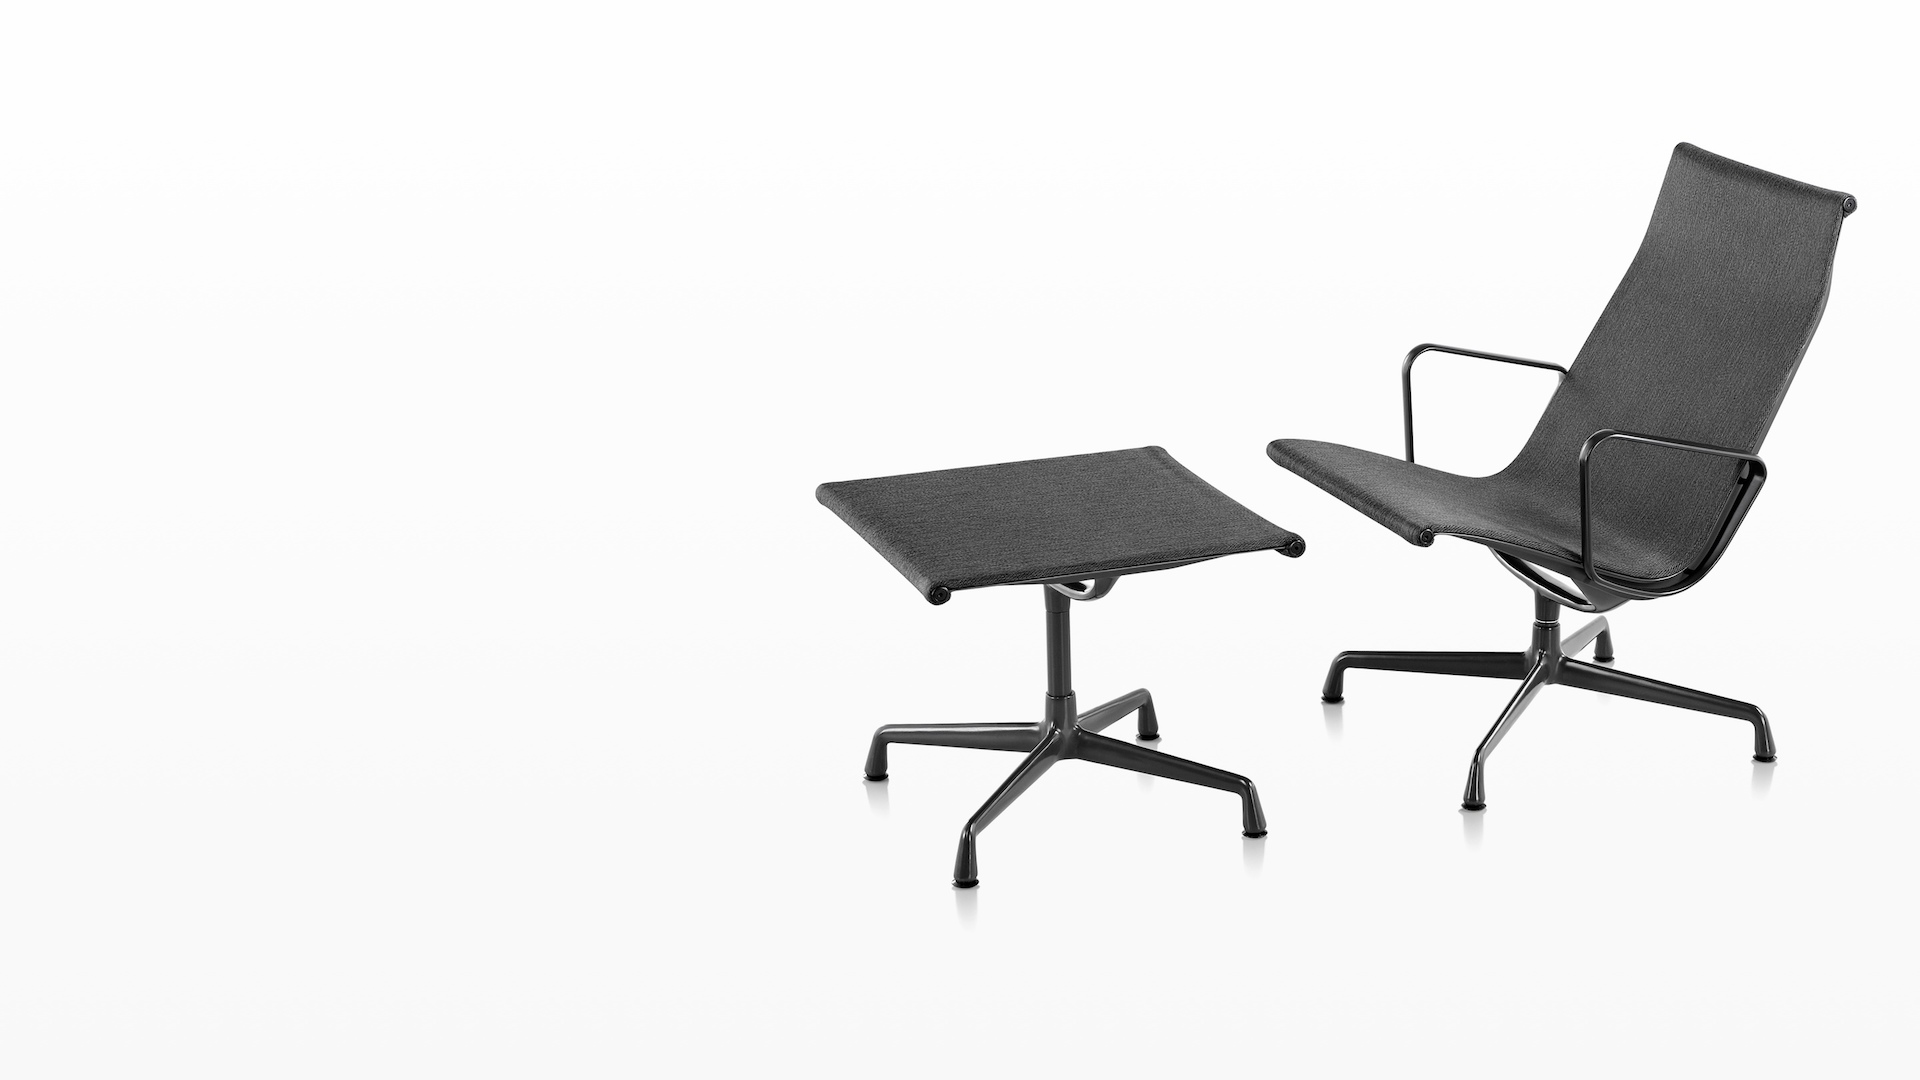 https://www.hermanmiller.com/products/seating/outdoor-seating/eames-aluminum-group-chairs-outdoor/